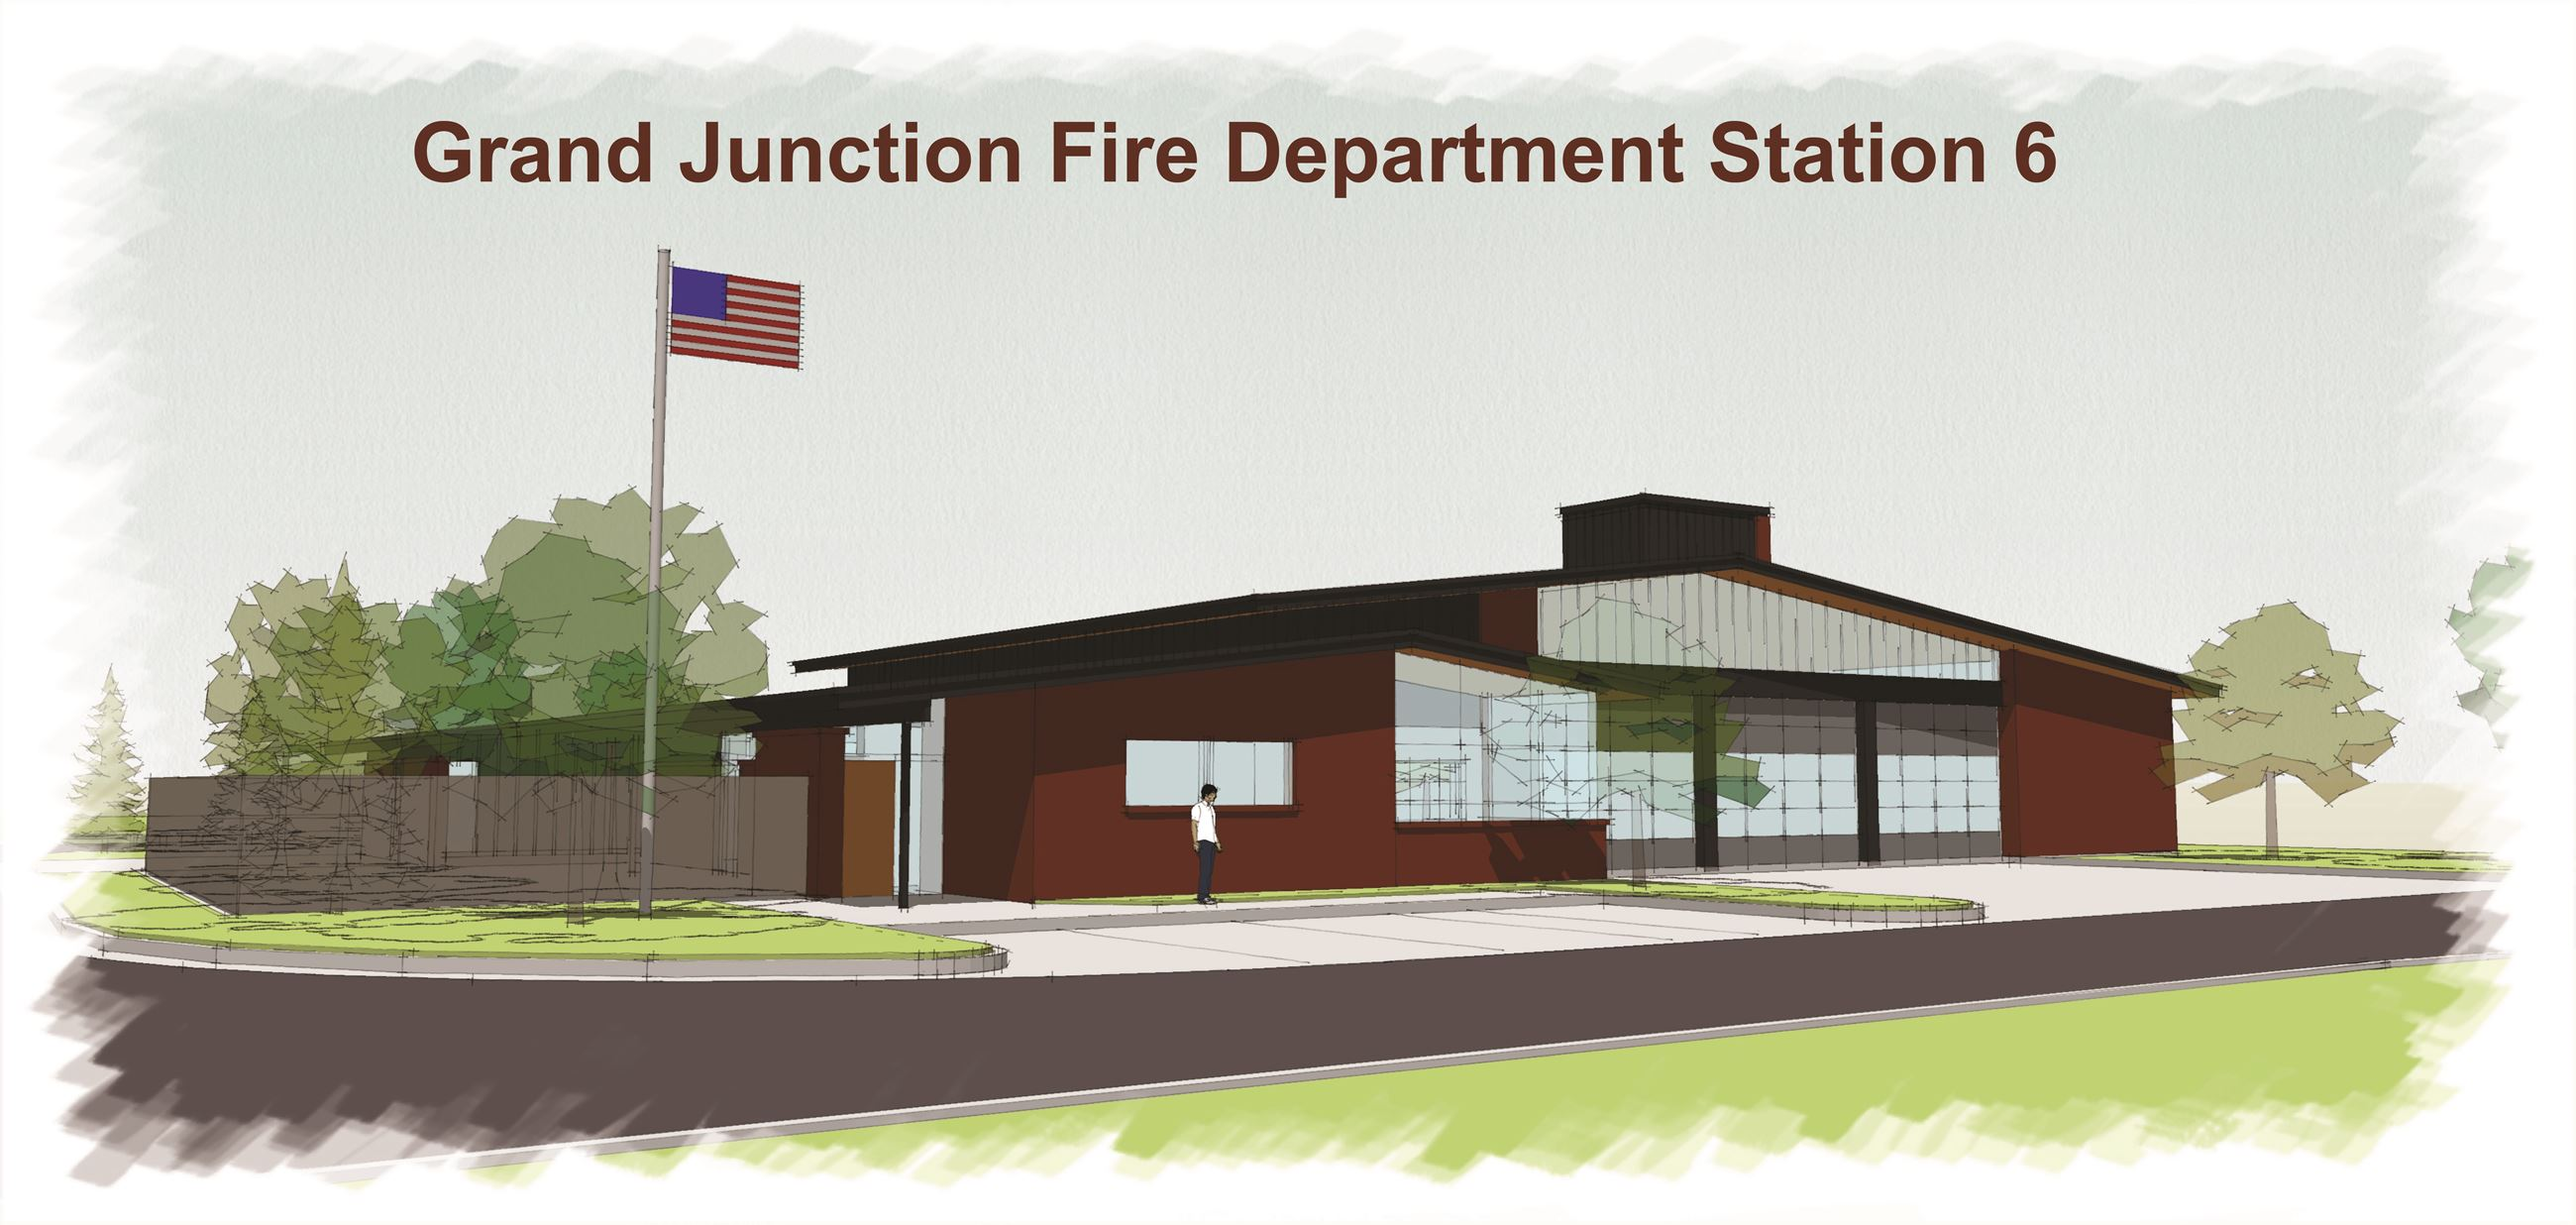 Grand Junction Fire Department Station 6 Drawing